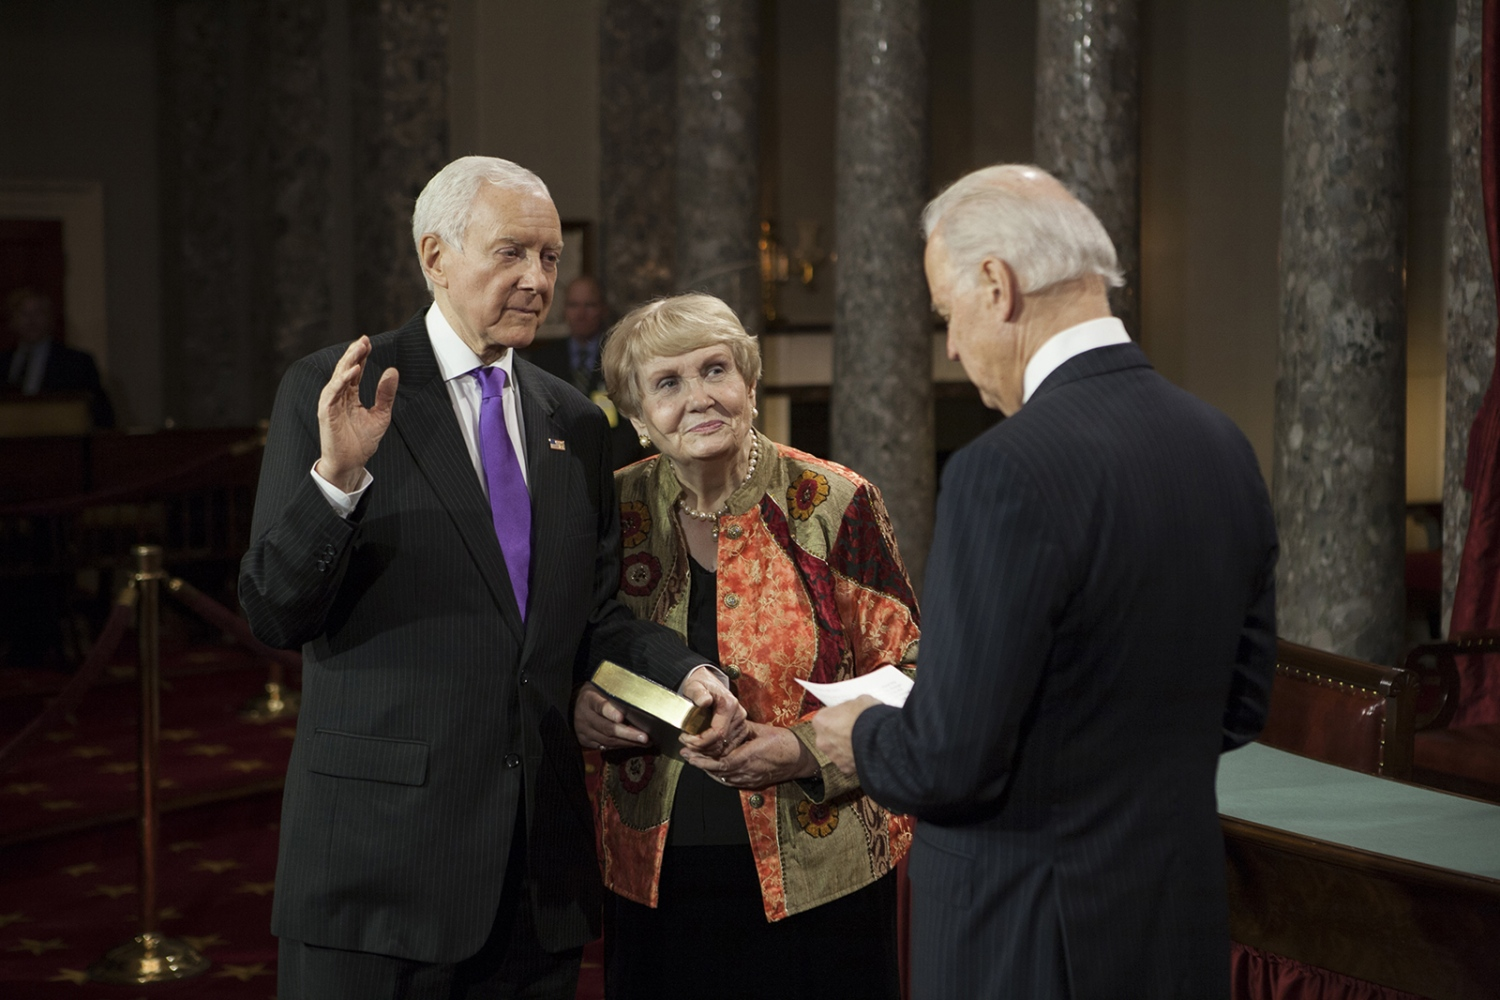 Senator Orin Hatch stands with his wife,Elaine, while he is sworn by Vice-President Joe Biden.